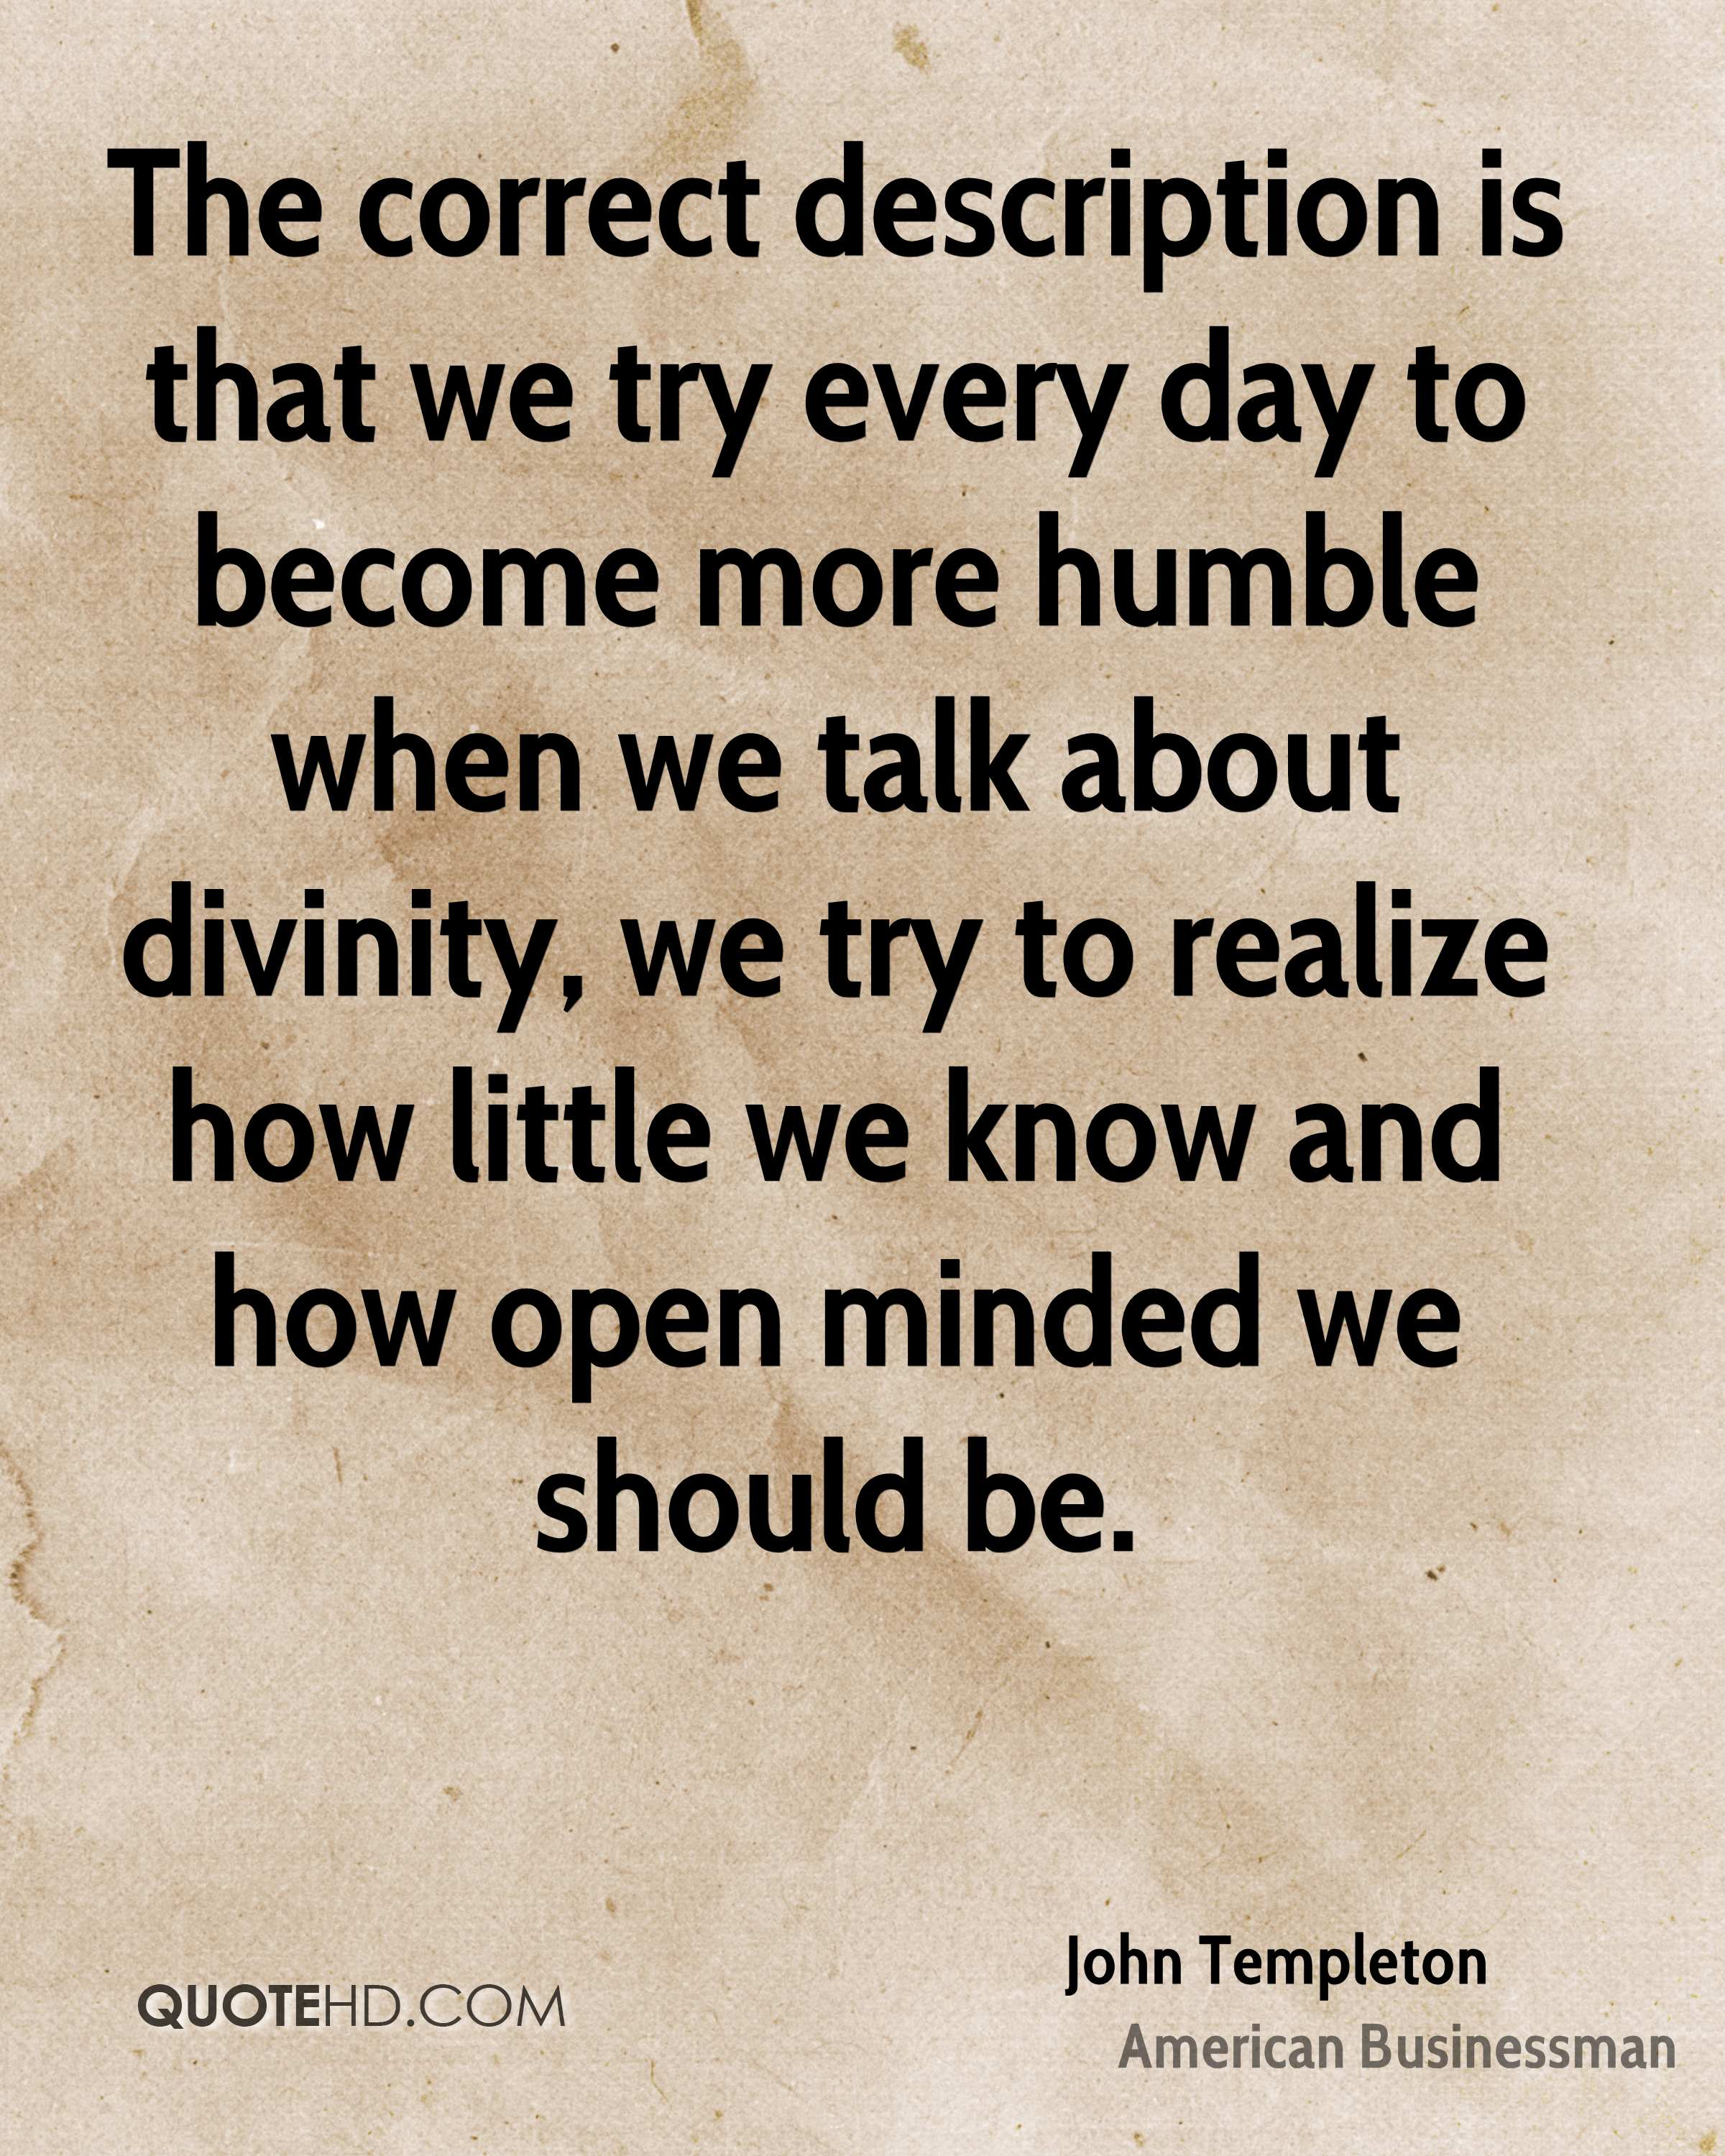 The correct description is that we try every day to become more humble when we talk about divinity, we try to realize how little we know and how open minded we should be.